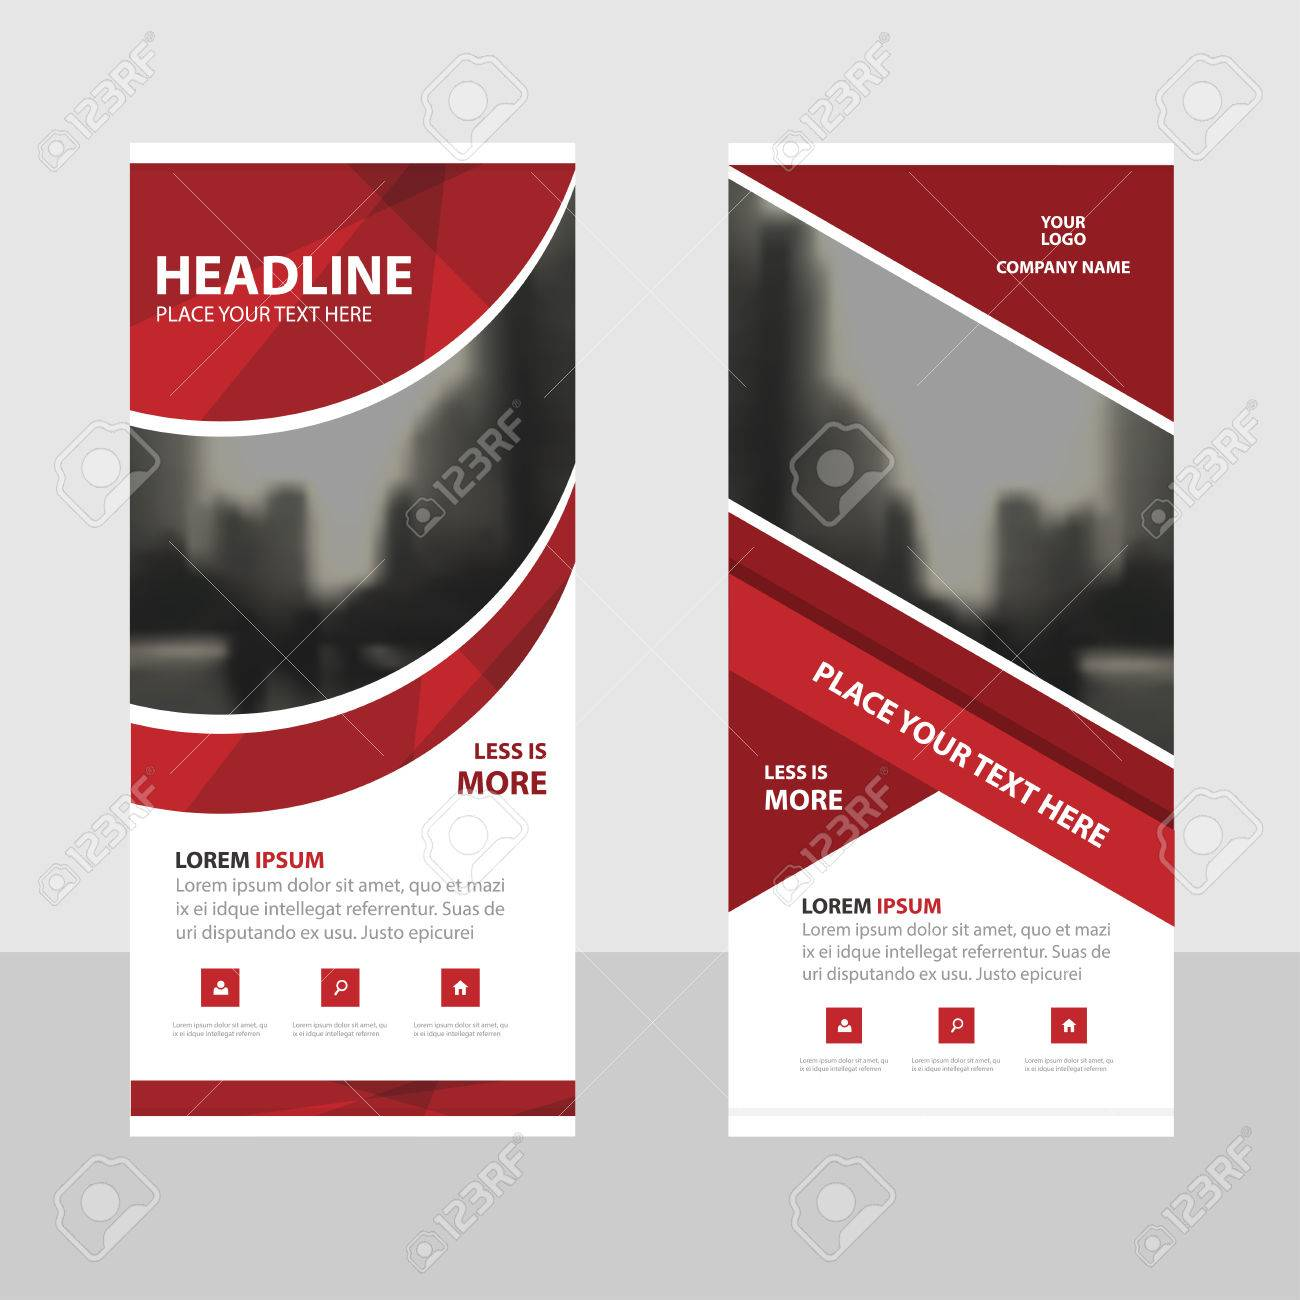 red curve business roll up banner flat design template abstract